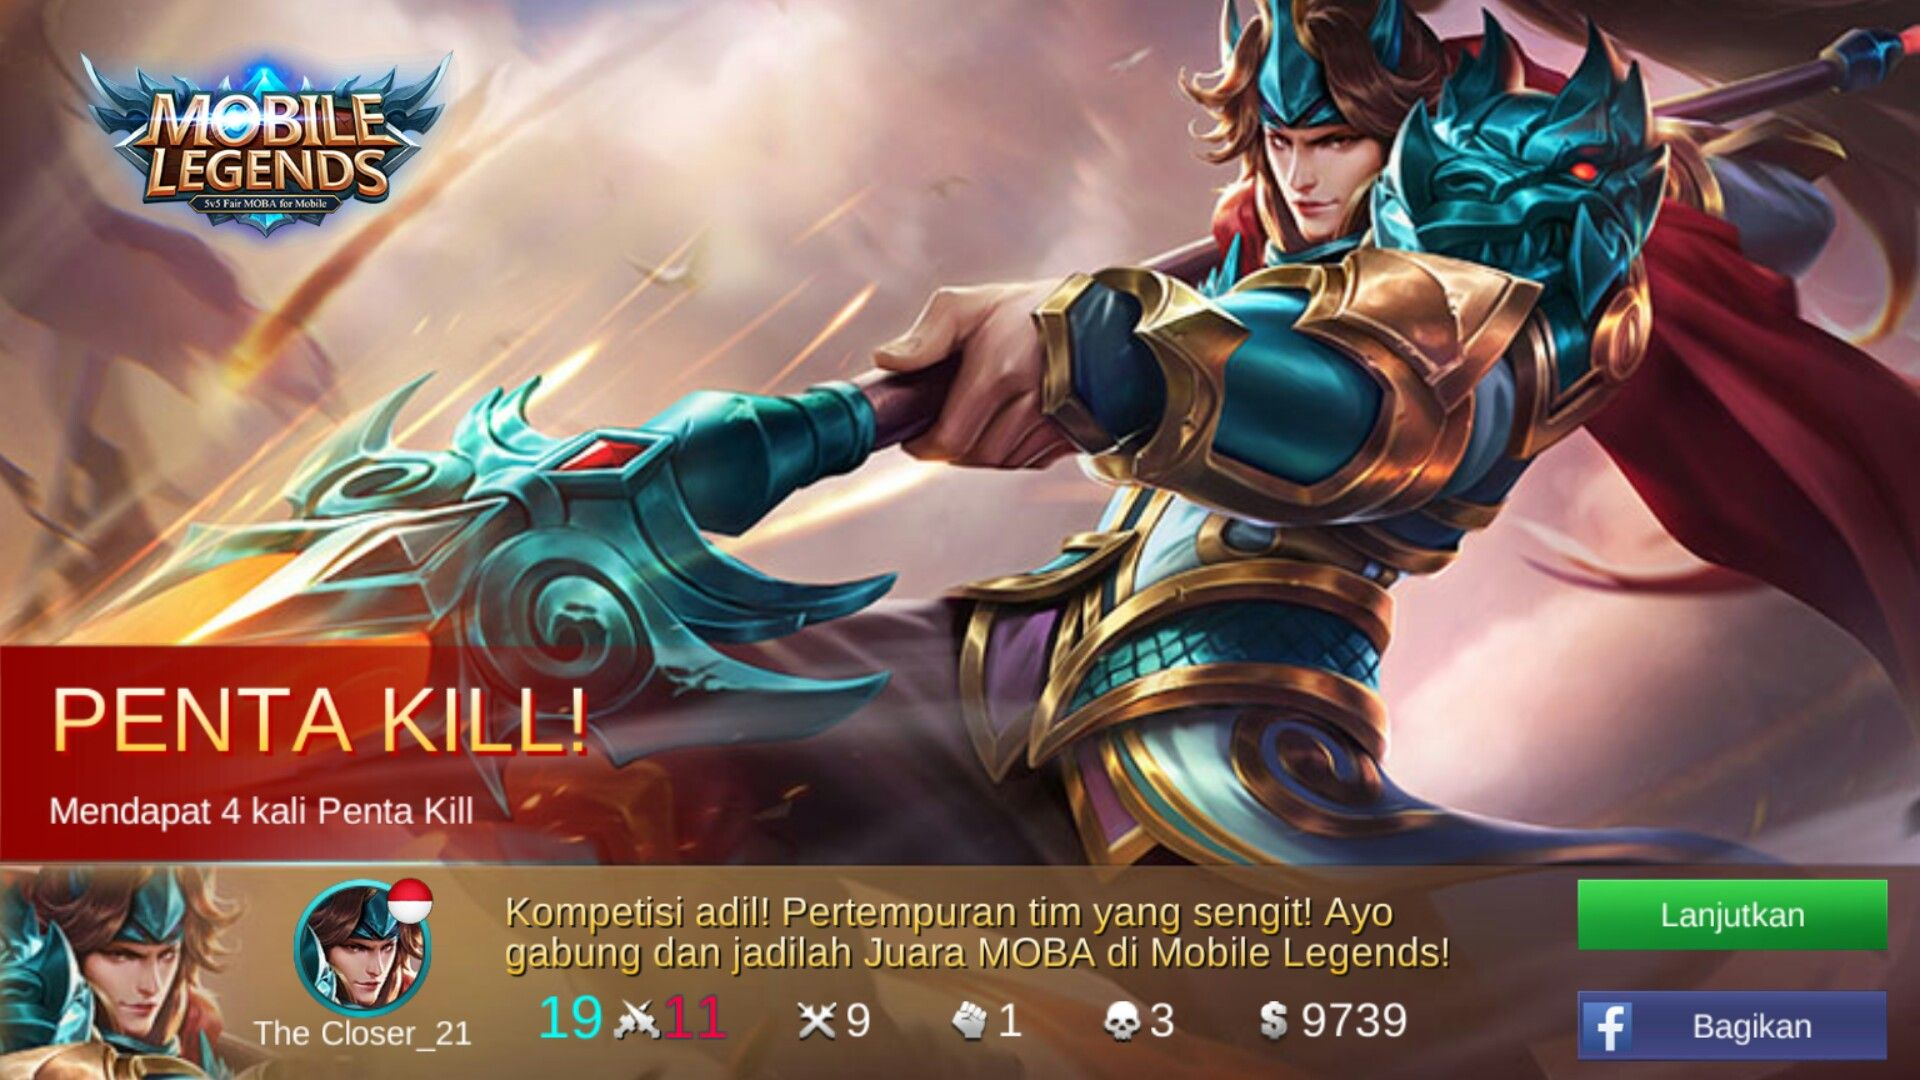 aa0770f4e3914a b2157a56 Mobile Legends